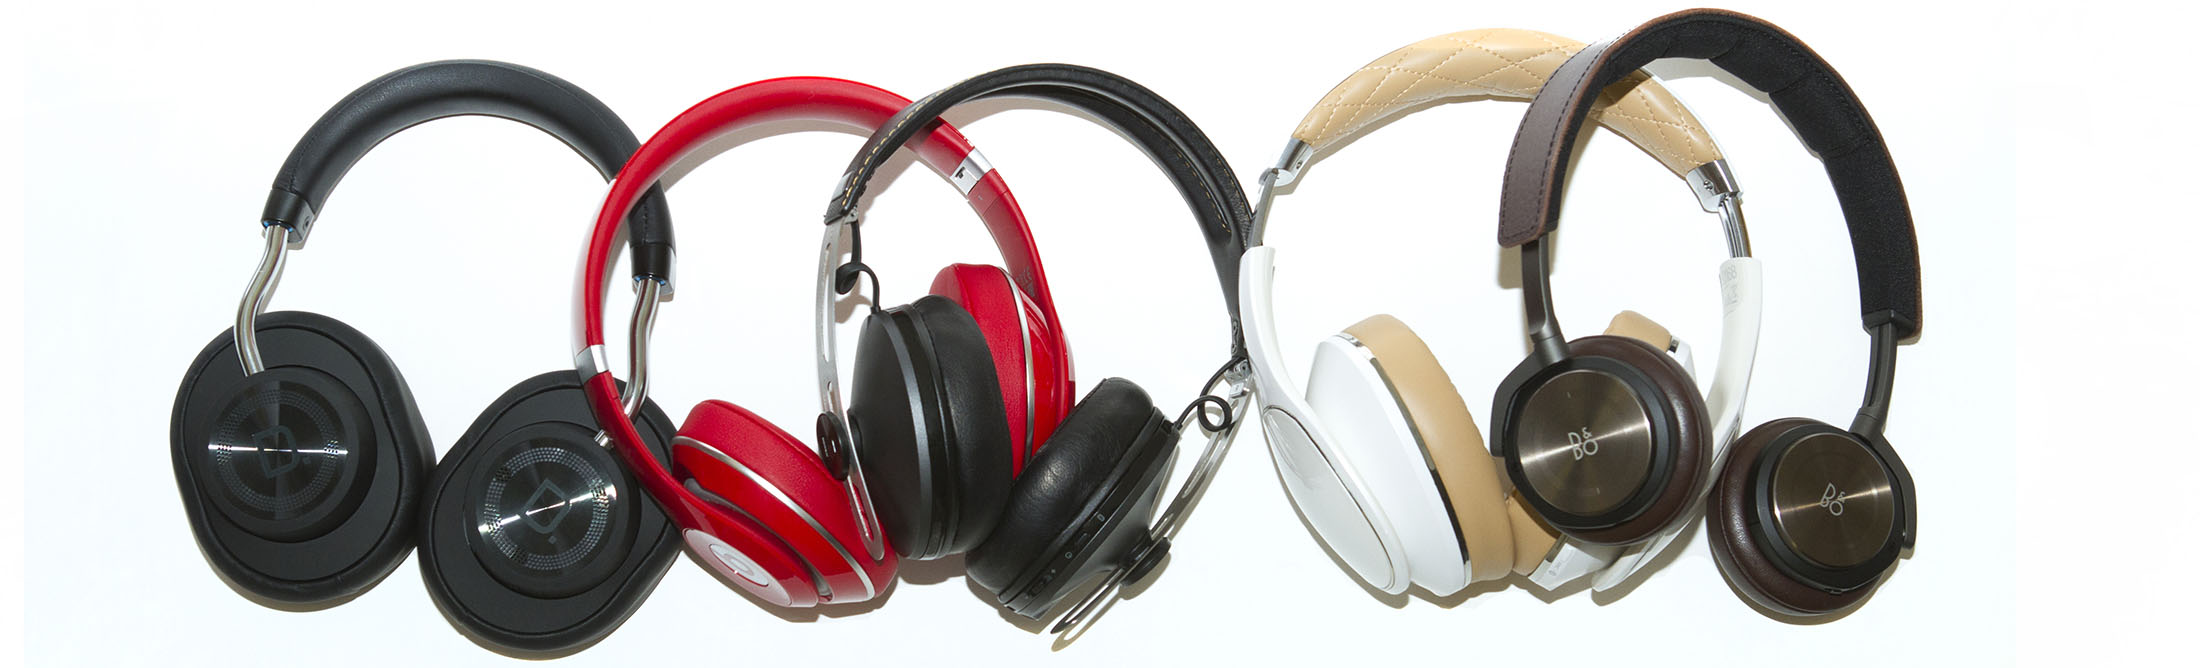 Review The Top 5 Wireless Noise Canceling Headphones Bloomberg Bang Ampamp Olufsen Beoplay H3 Lightweight Earphone Black